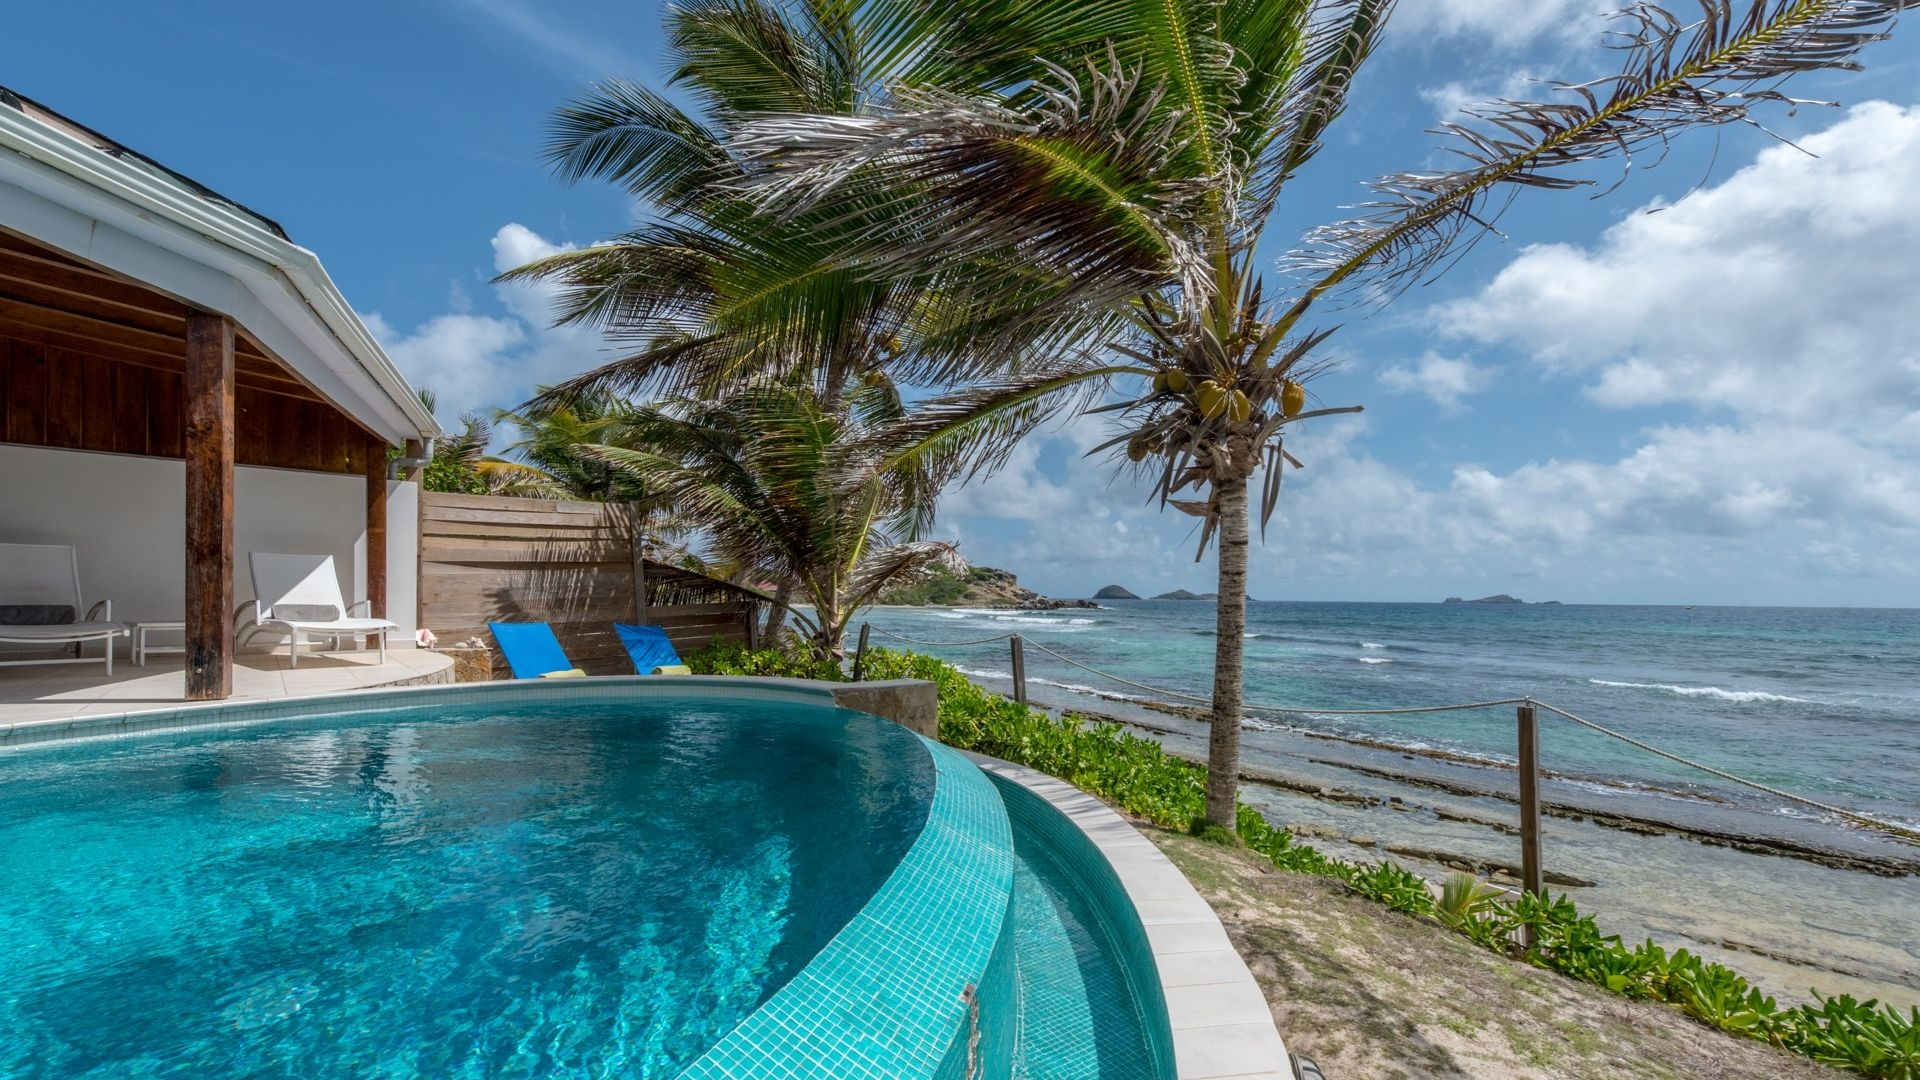 Luxury villa rentals caribbean - St barthelemy - Anse des cayes - No location 4 - Key Lime - Image 1/21